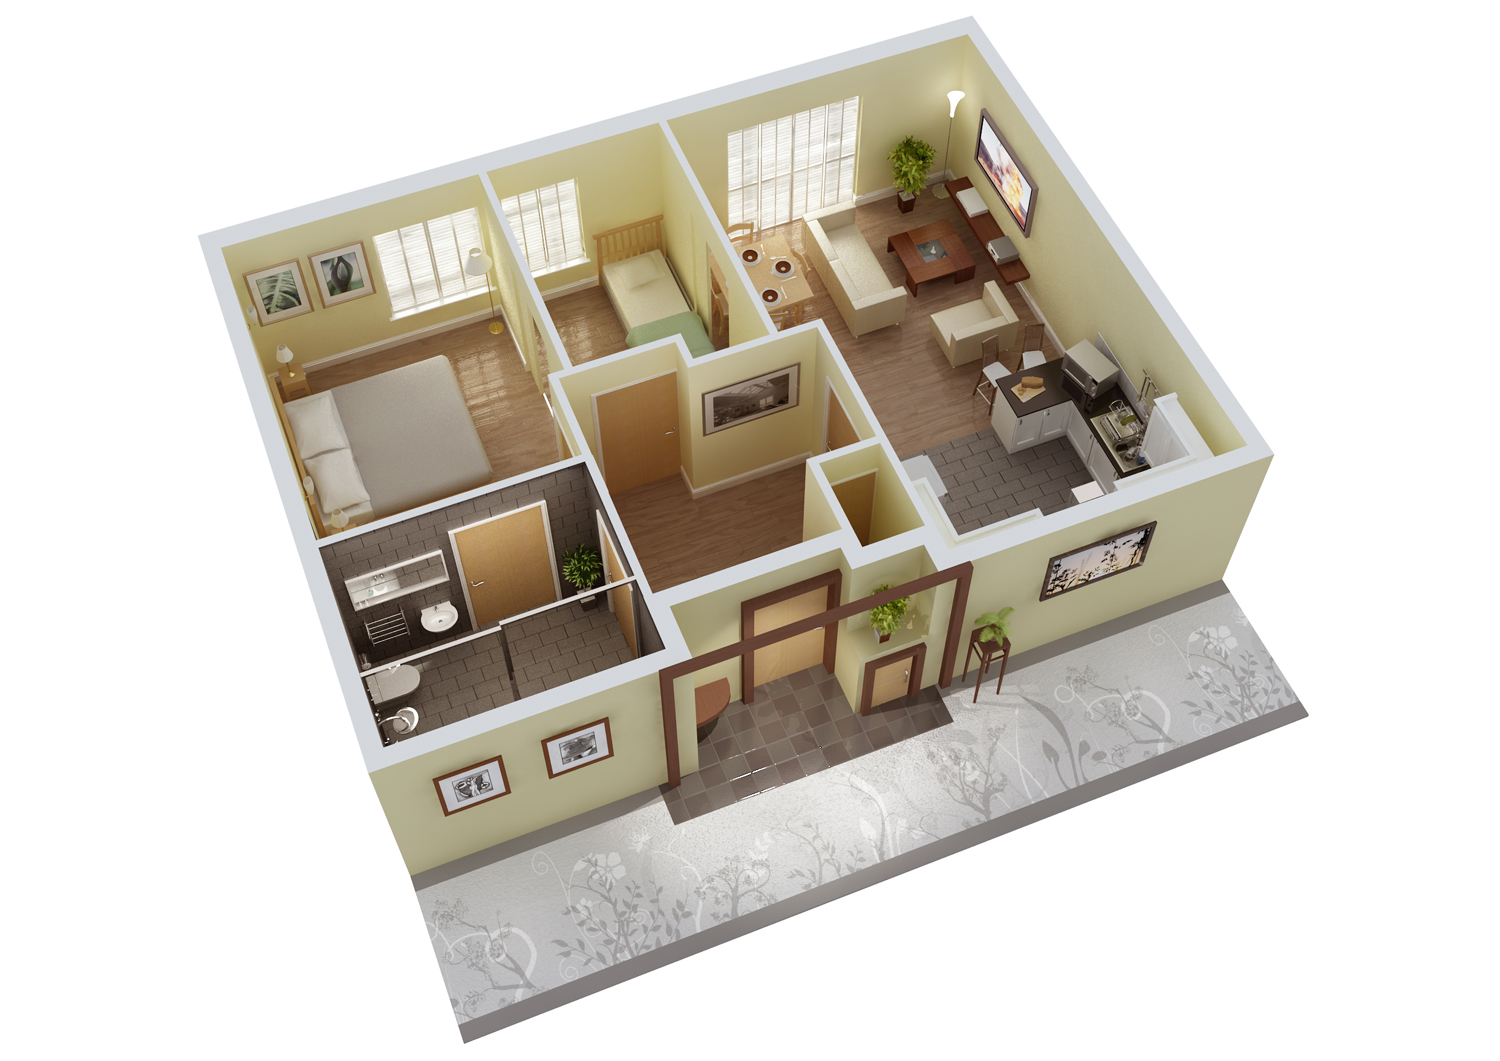 Http Mathictresources Blogspot Com 2012 11 Project 3d Floor Plan Html